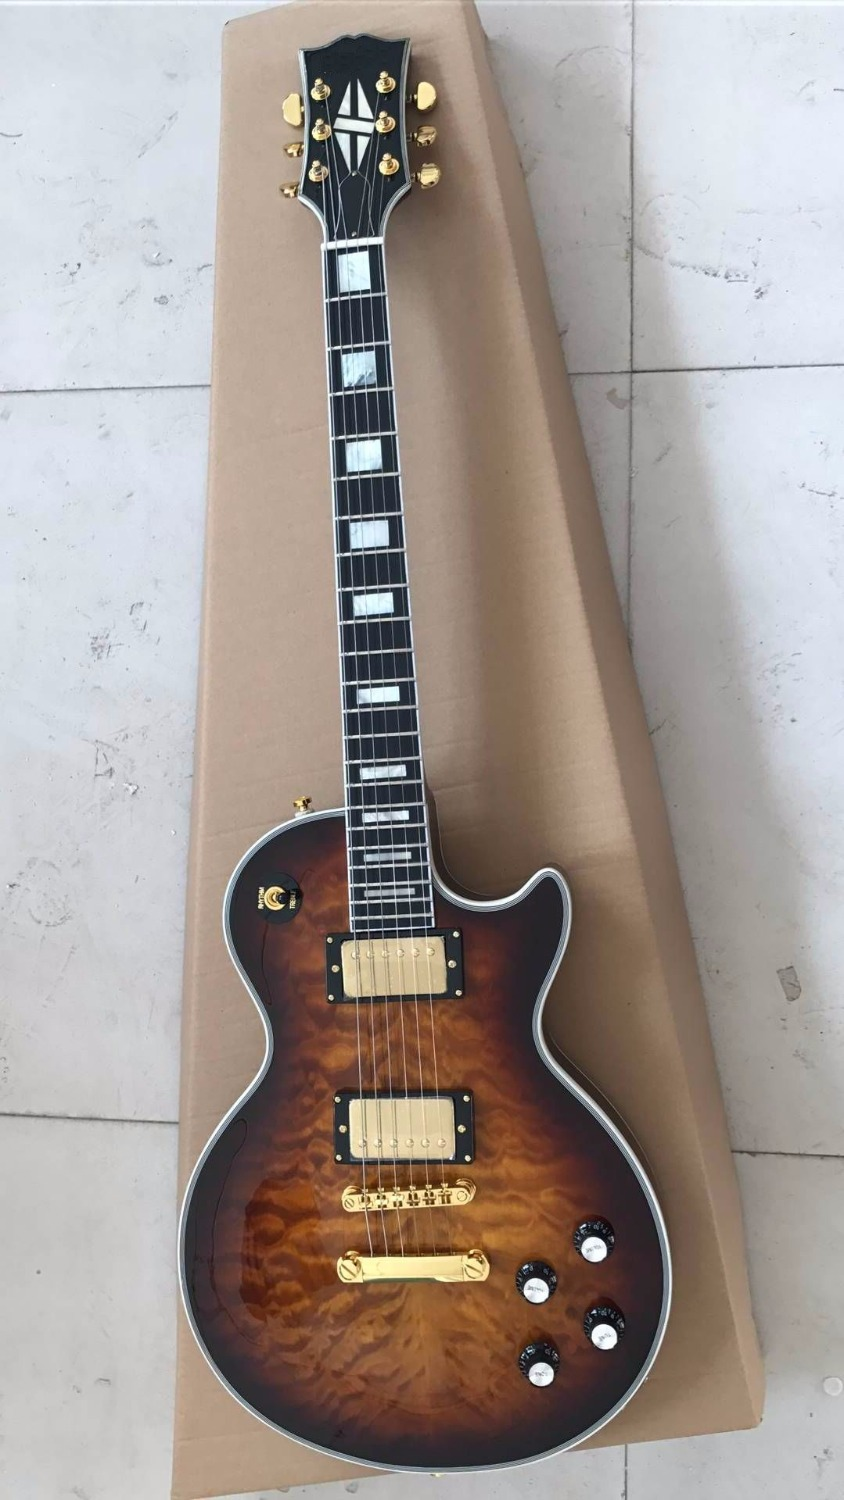 Wholesale Cheap Guitar Gbs LP Custom Electric Guitar Ebony Fingerboard/Fretside Binding In Brown Burst 170302 new arrival cnbald lp supreme electric guitar top quality lp guitar in deep brown 110609 page 2